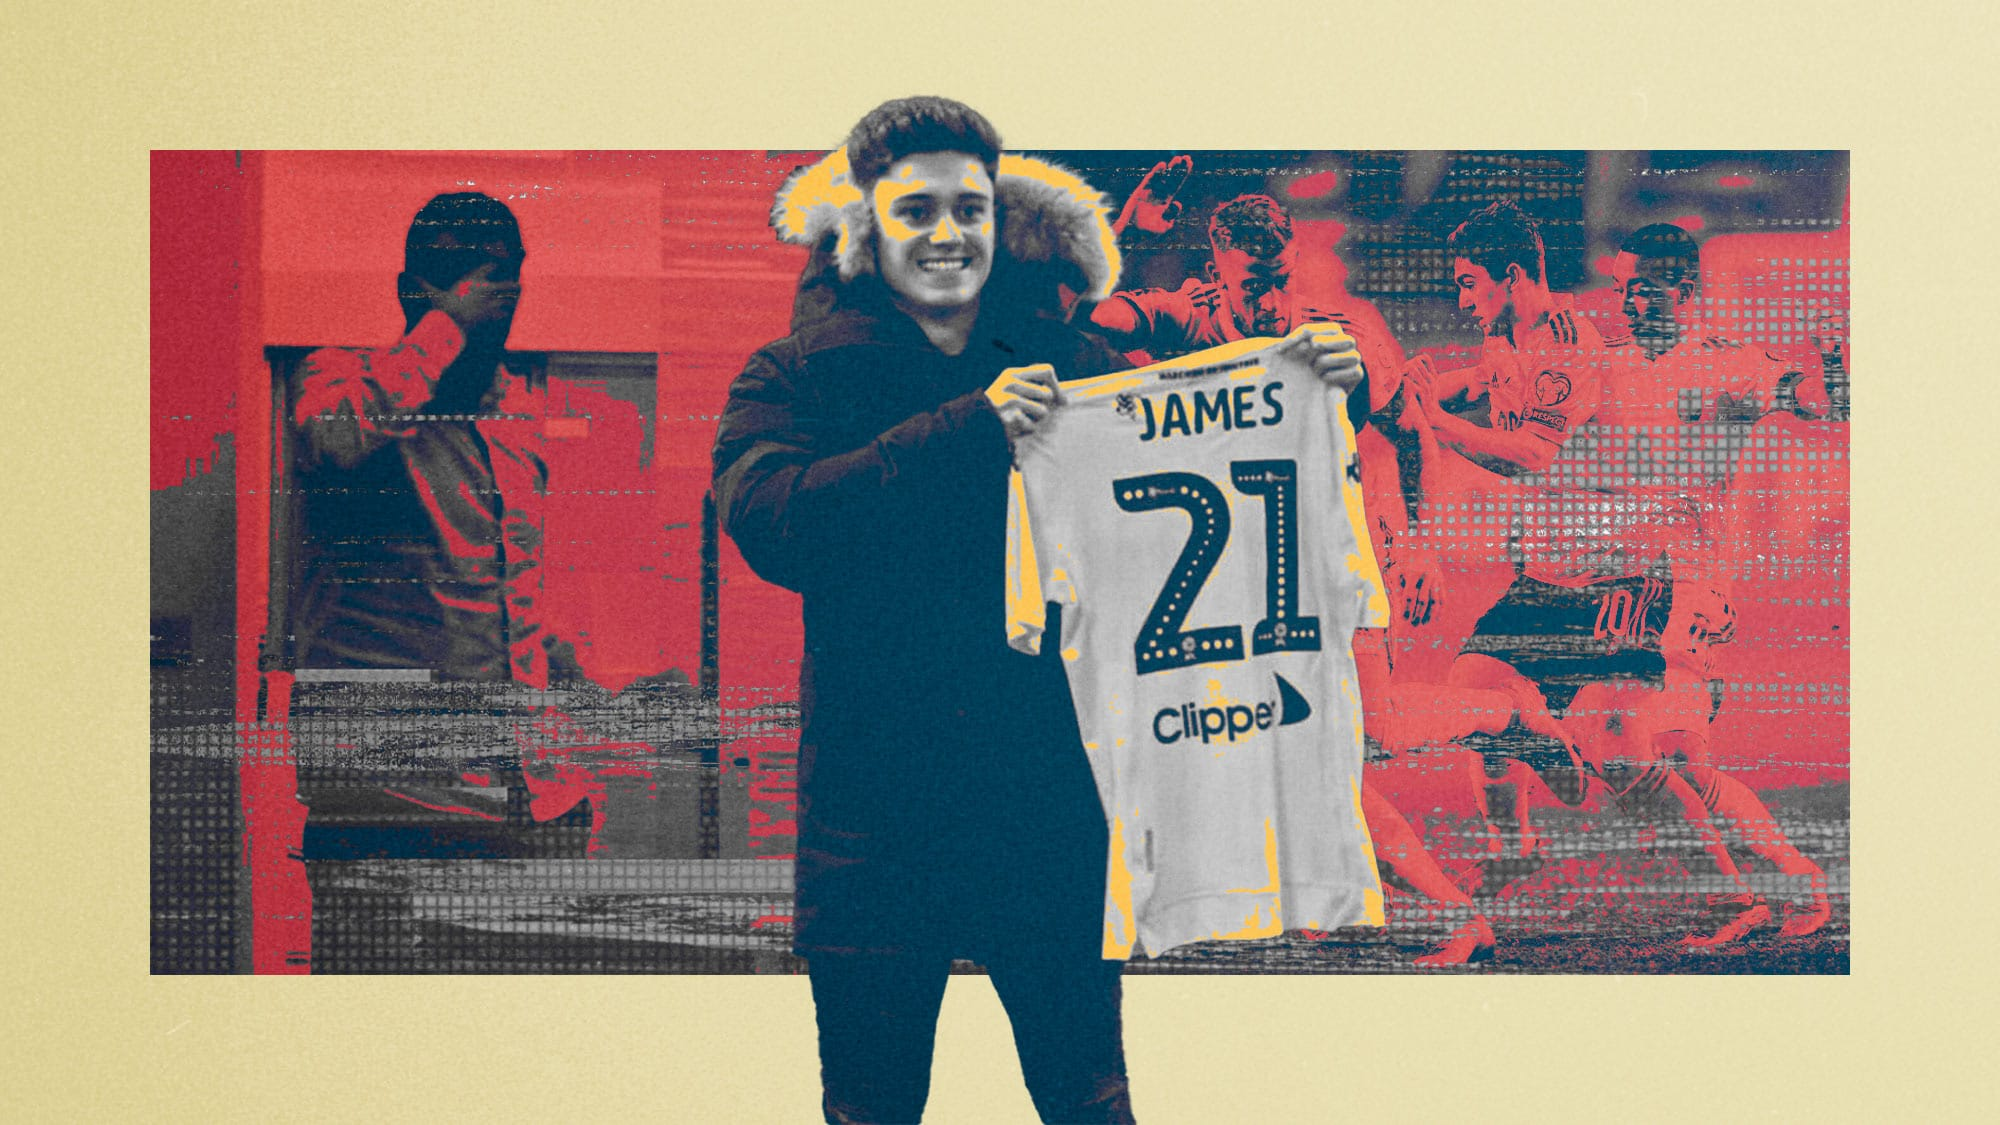 Dan James holding a Leeds shirt up in one of the photos from his failed move